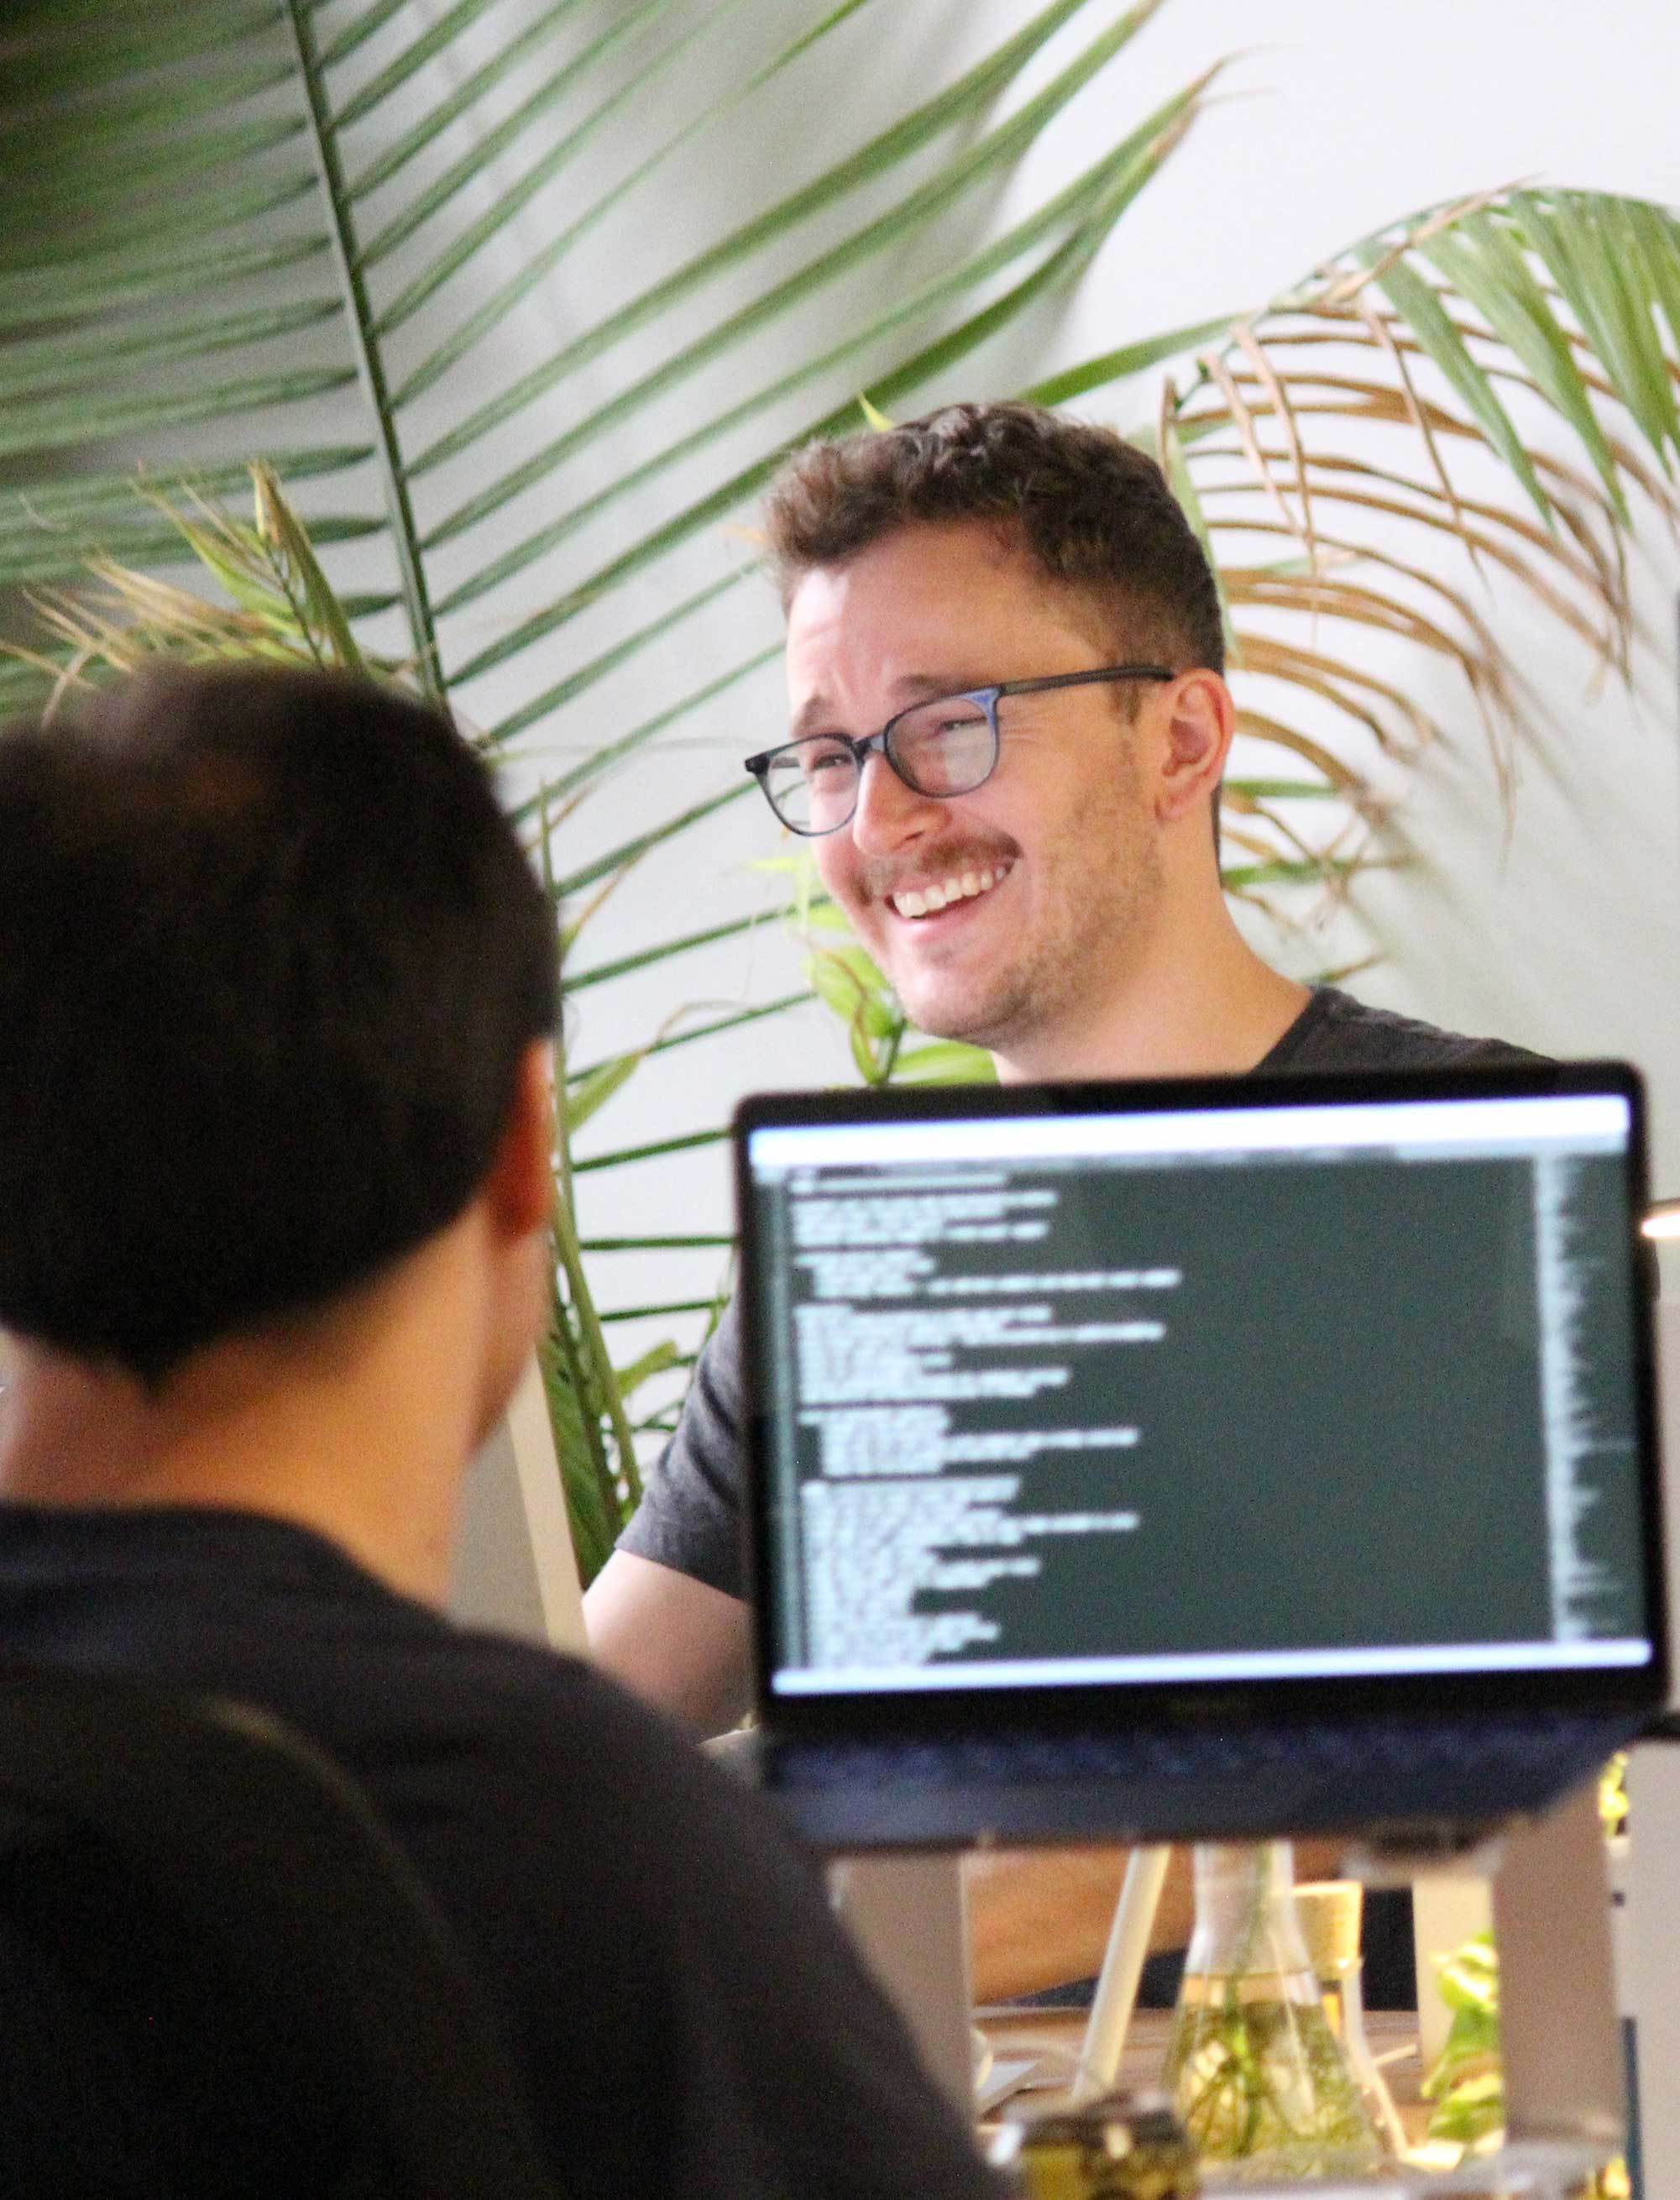 Photo of a Crema employee coding and another behind him smiling